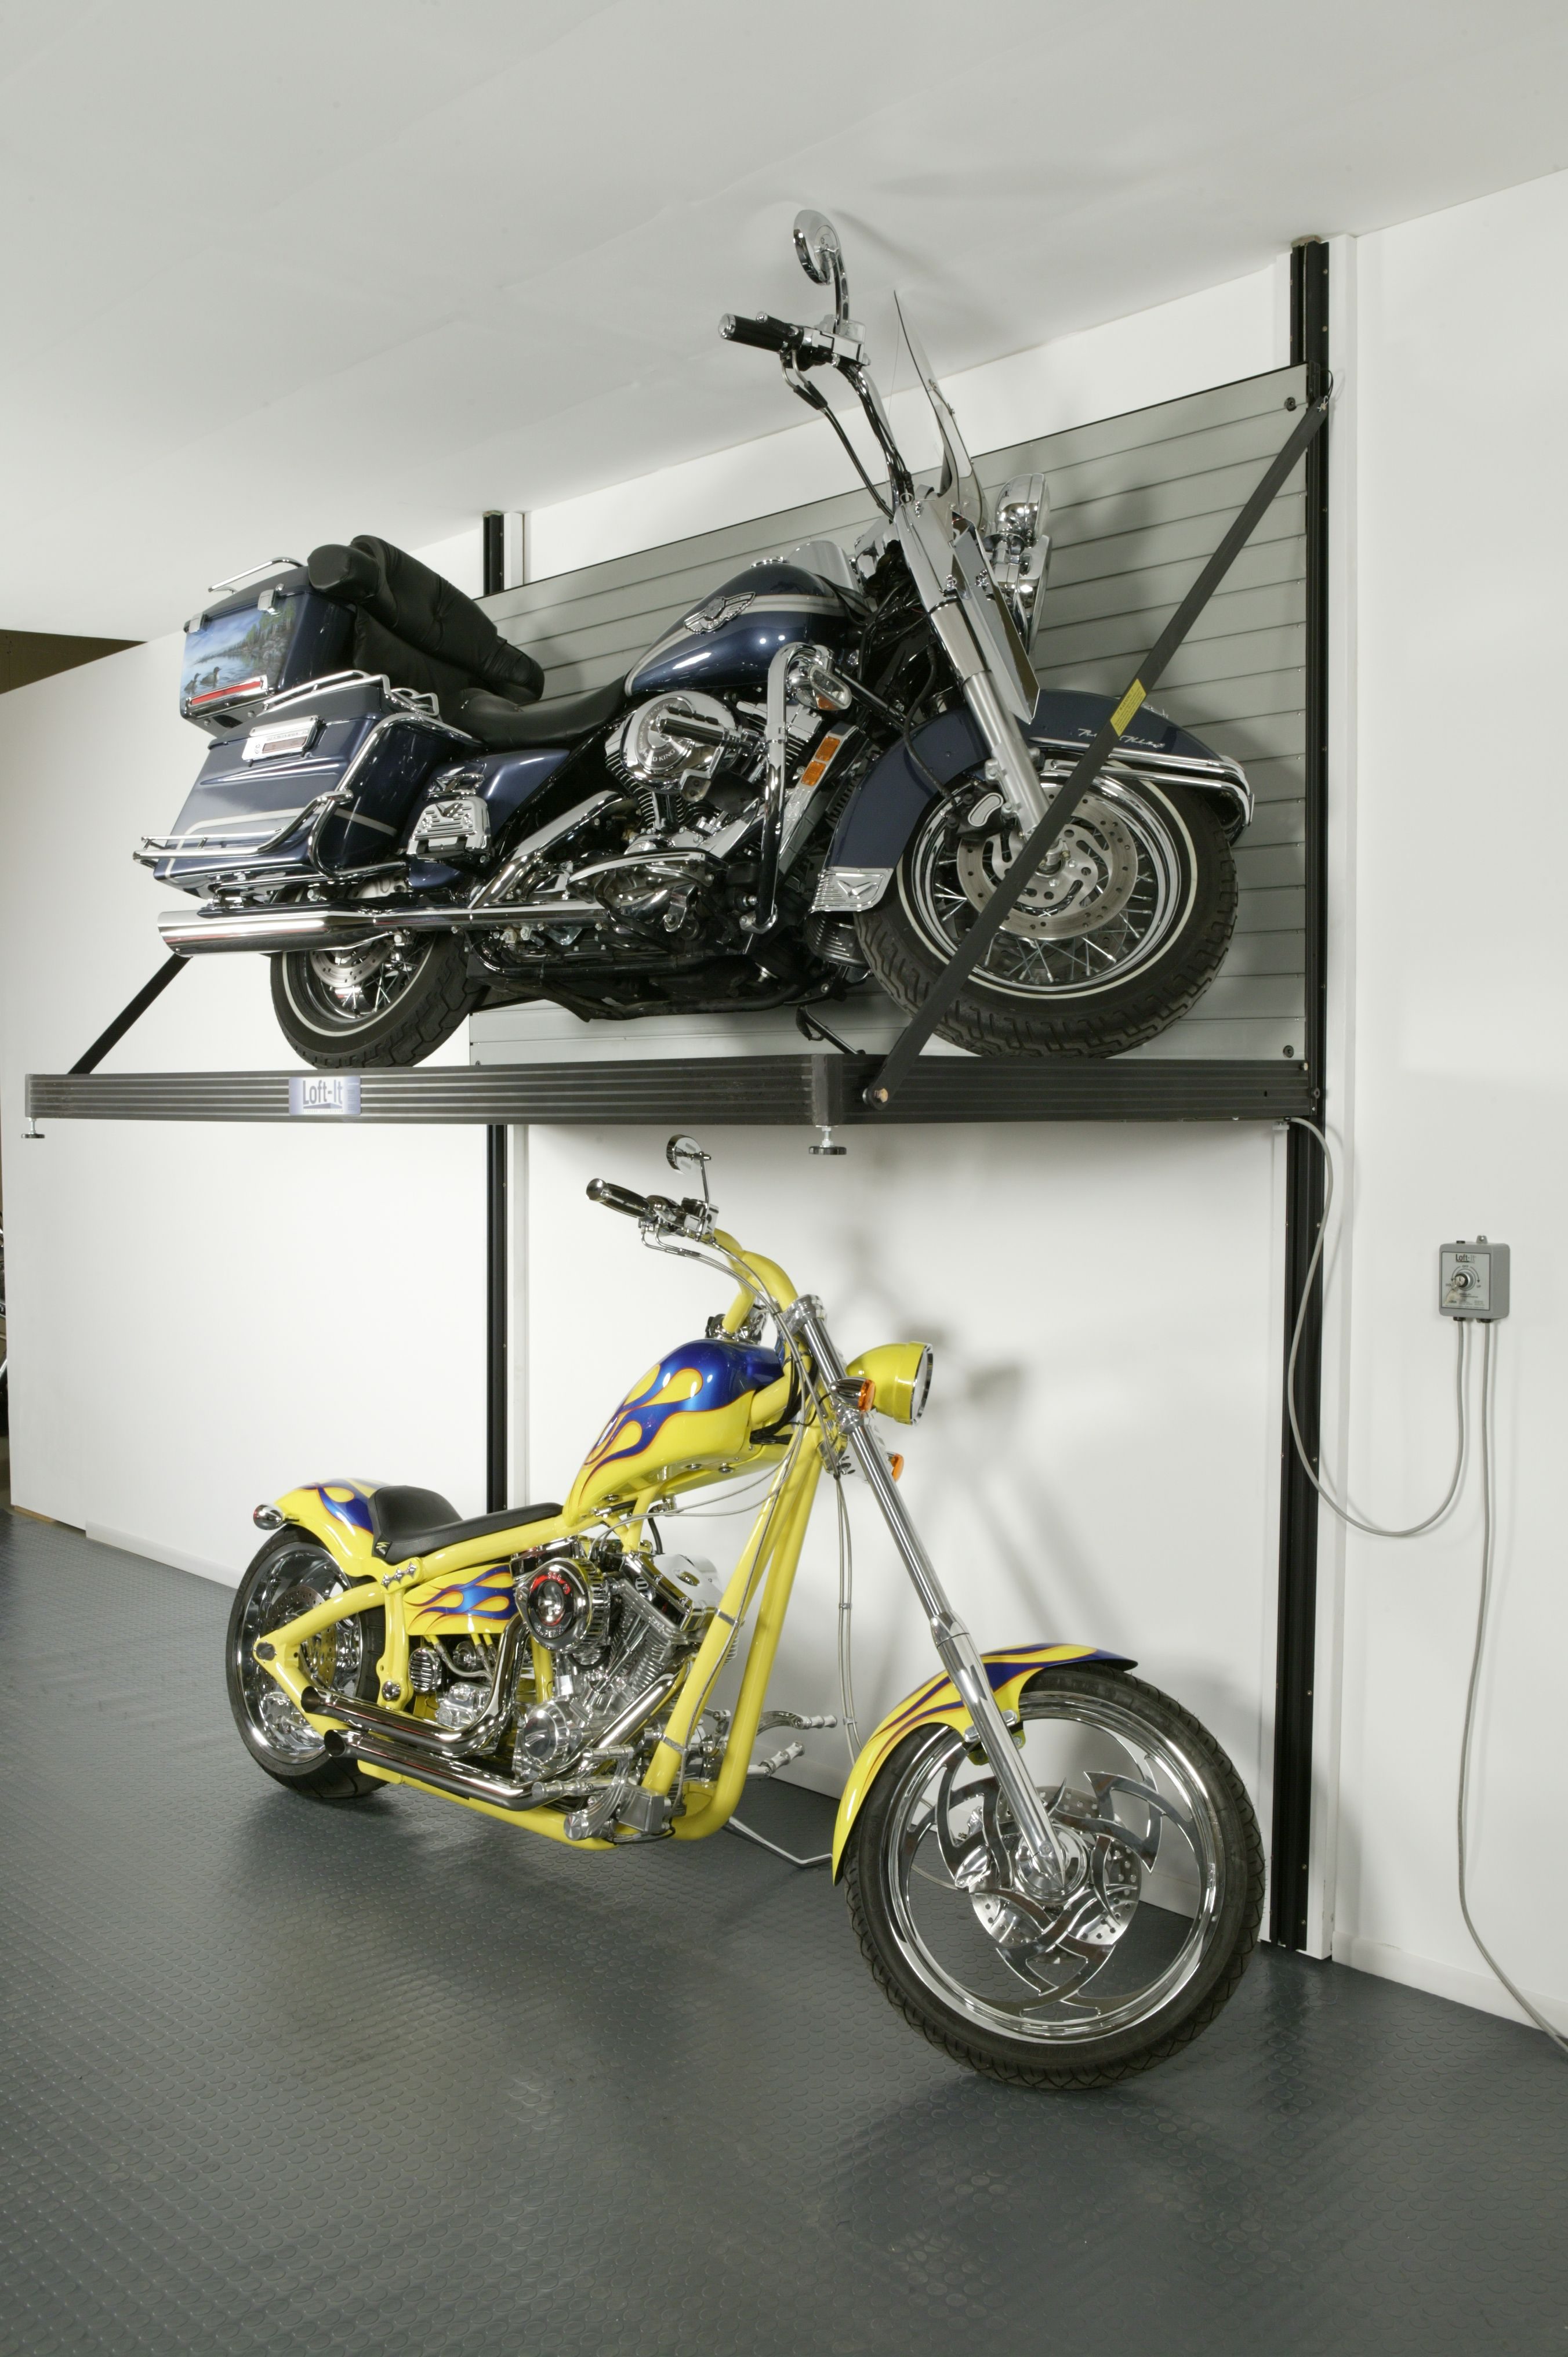 Garage Storage Lift Hubby Needs This! | Garã¡å¾, Skladovã¡nã­